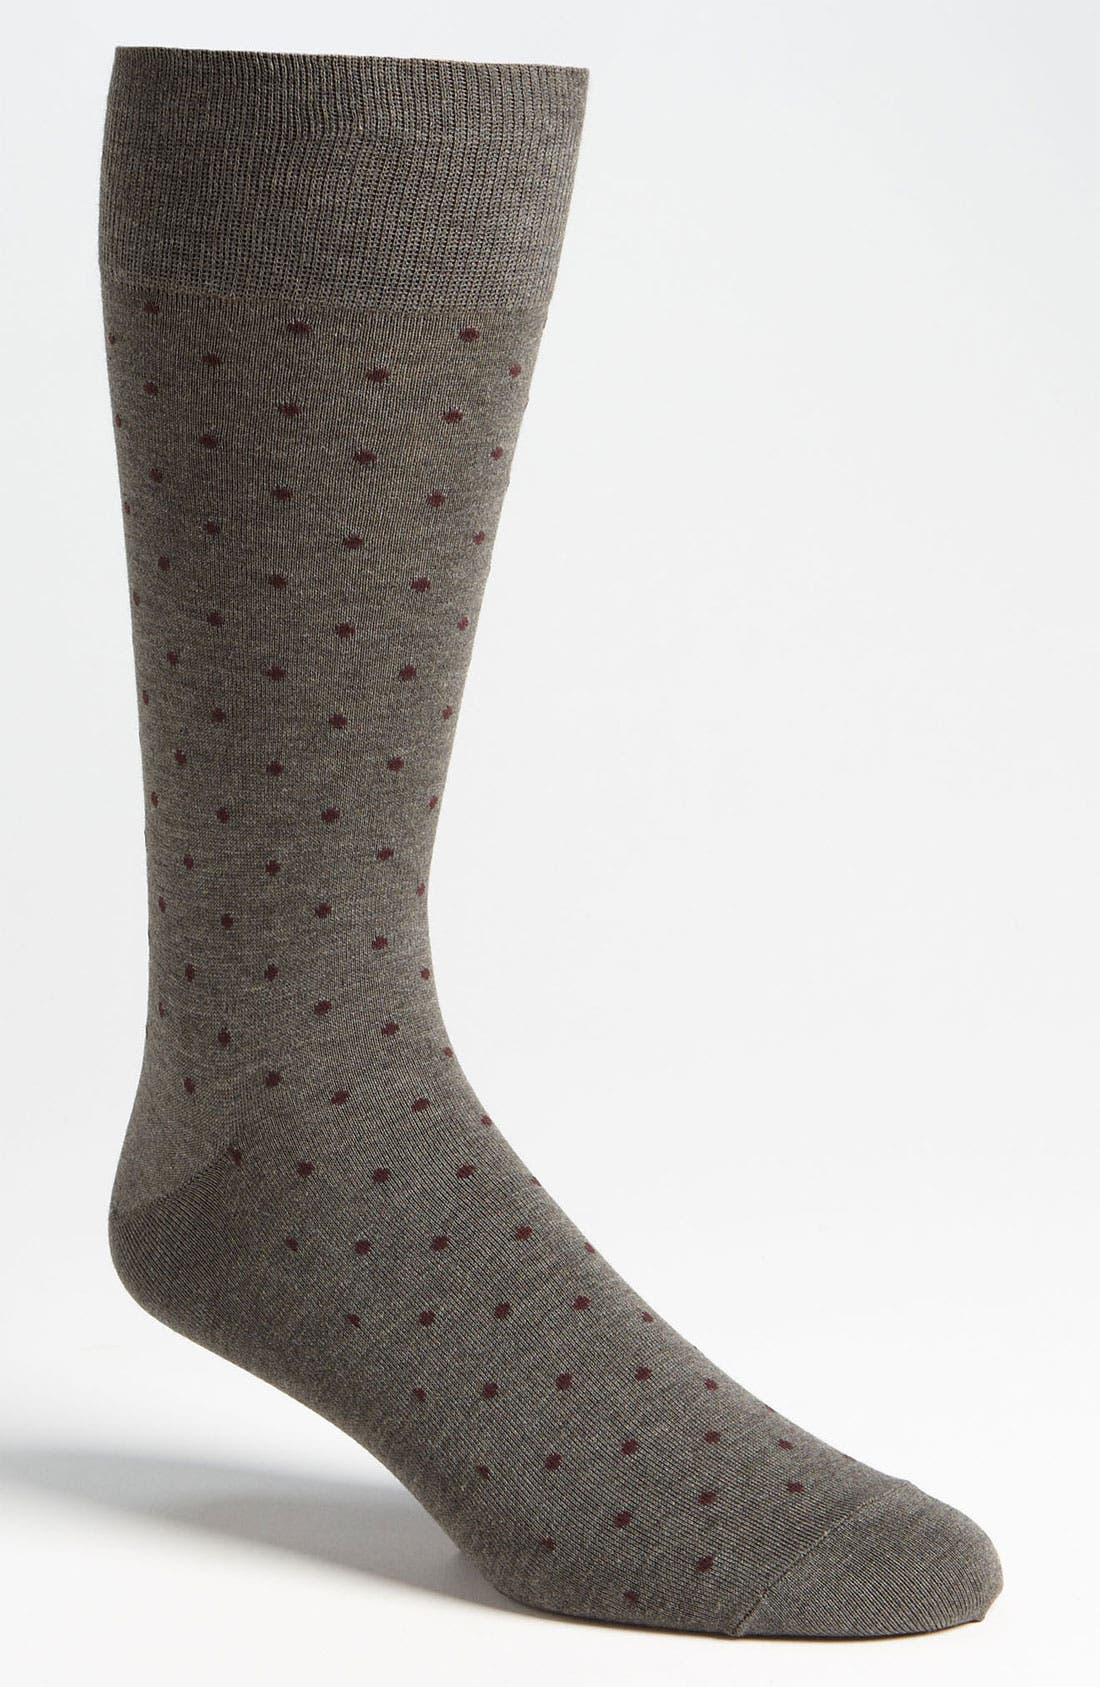 Alternate Image 1 Selected - Polo Ralph Lauren Cotton Blend Socks